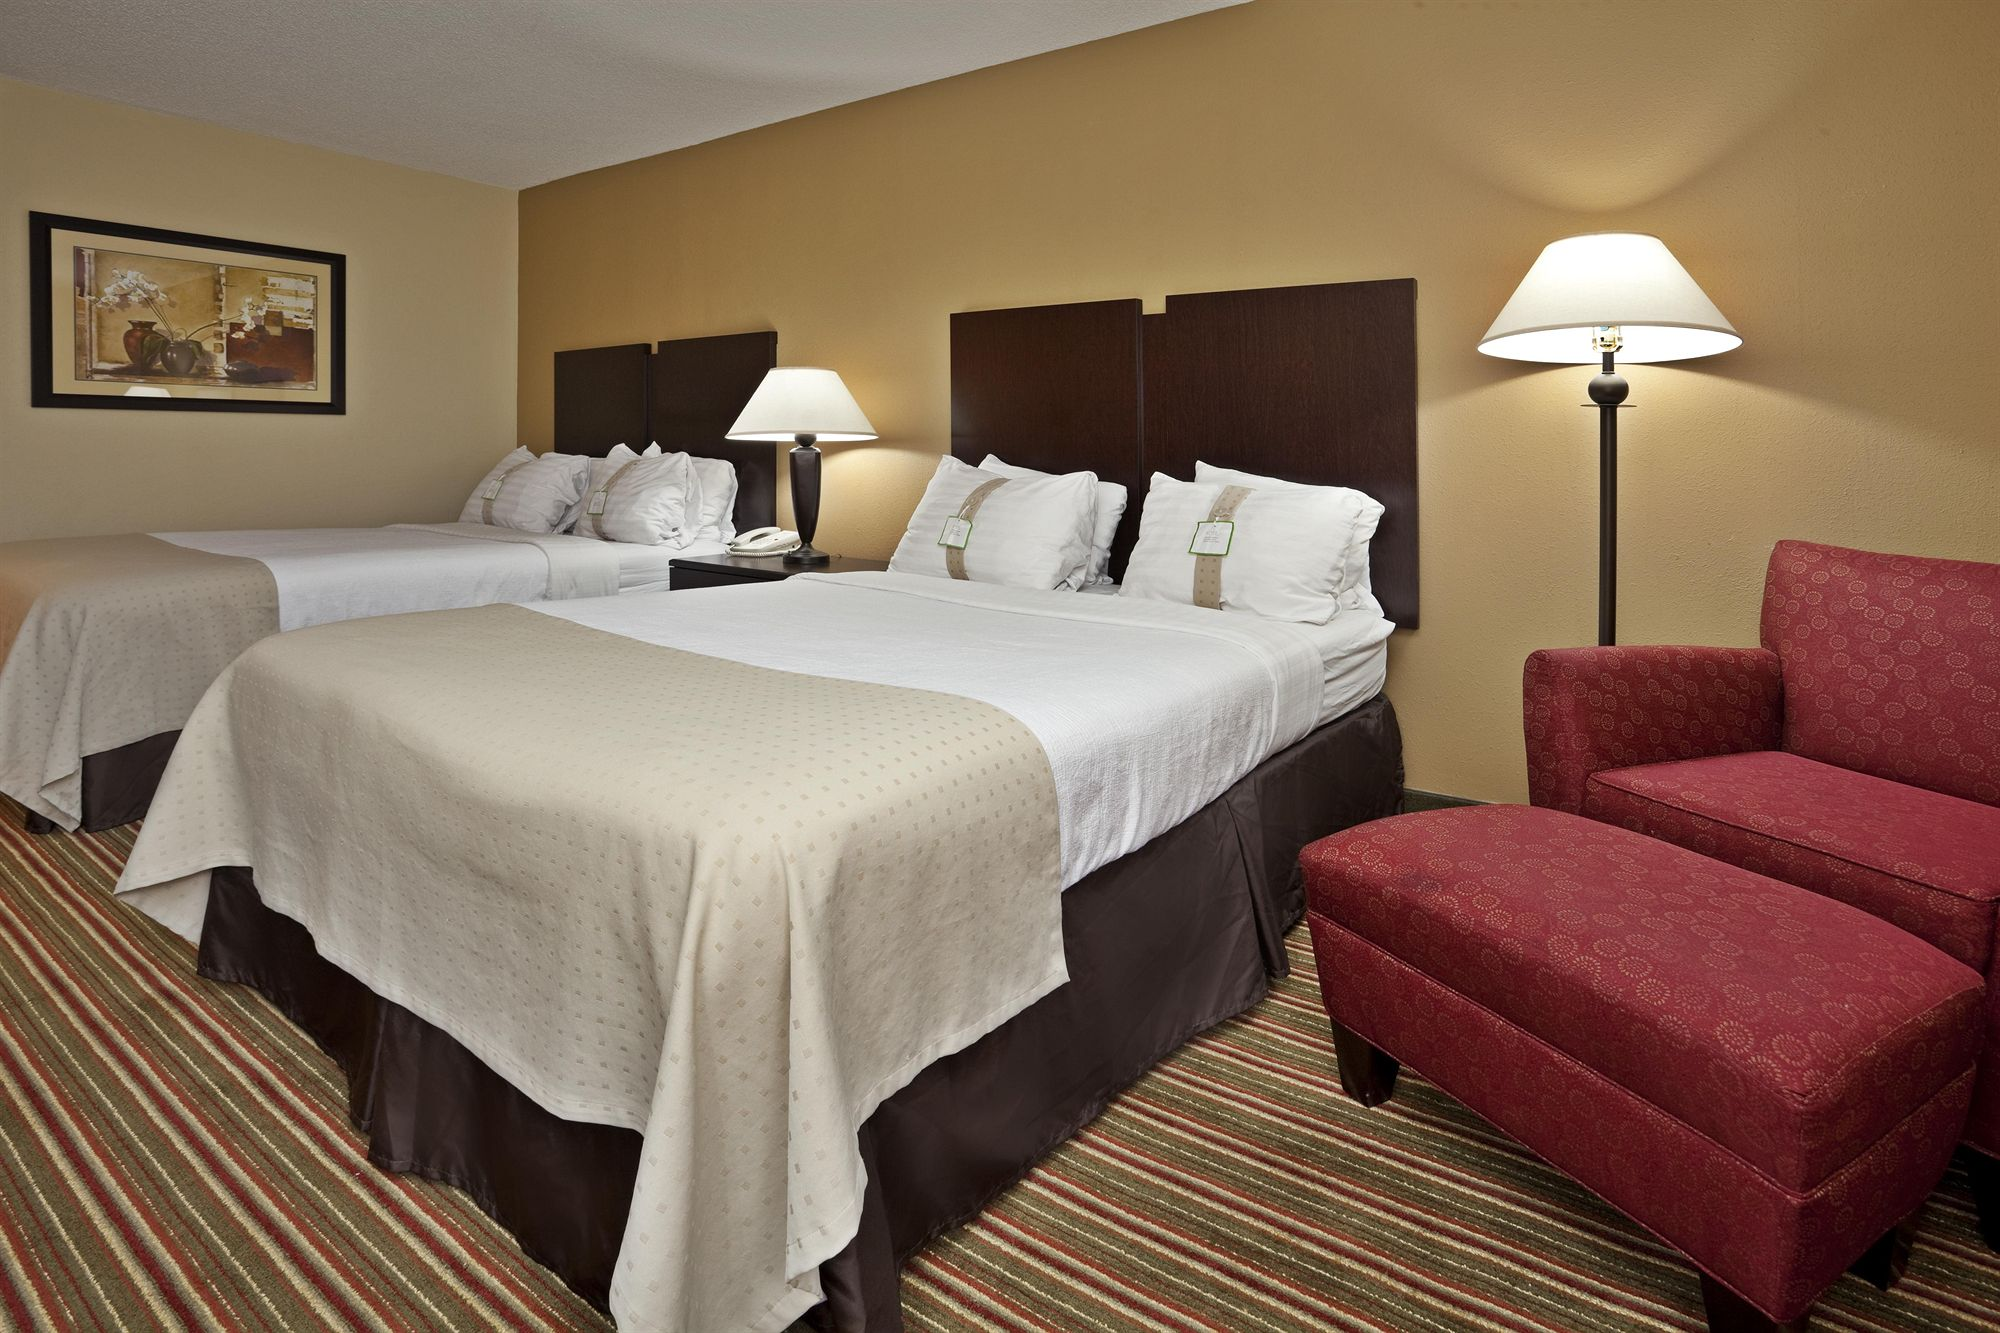 Holiday Inn in Lumberton, NC